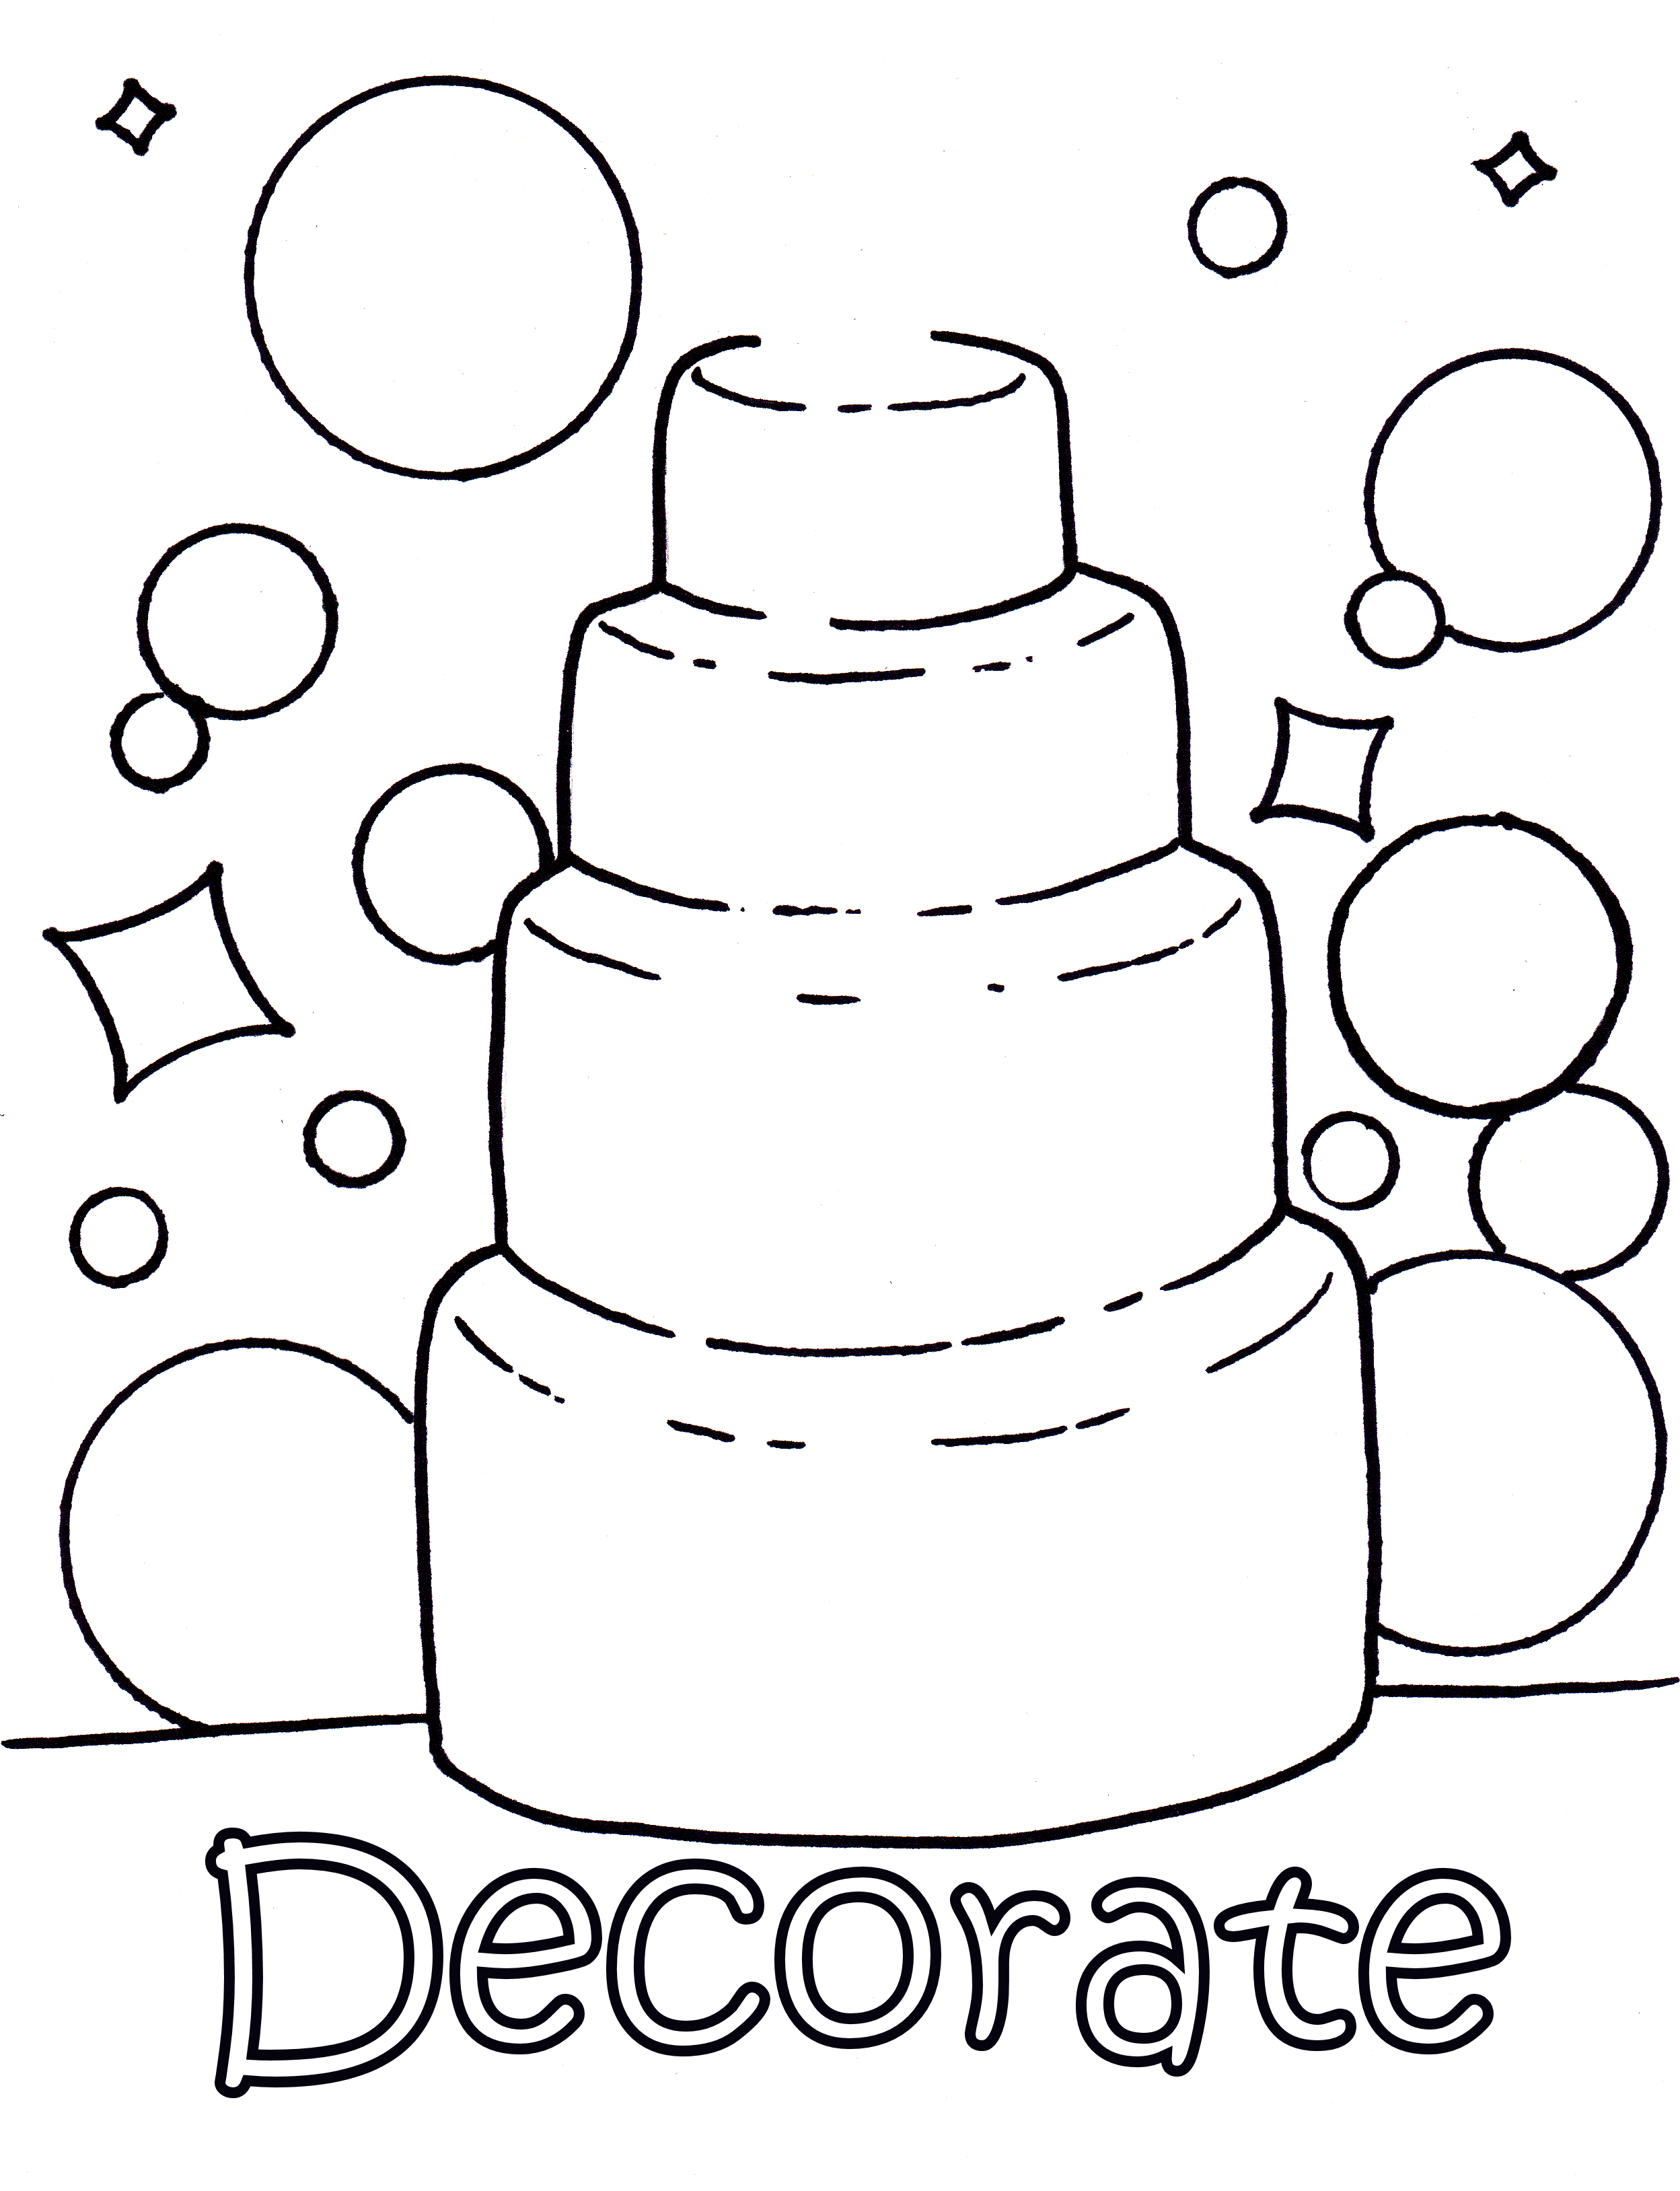 Coloring picture  Wedding cake colouring pages wedding coloring for kids activities